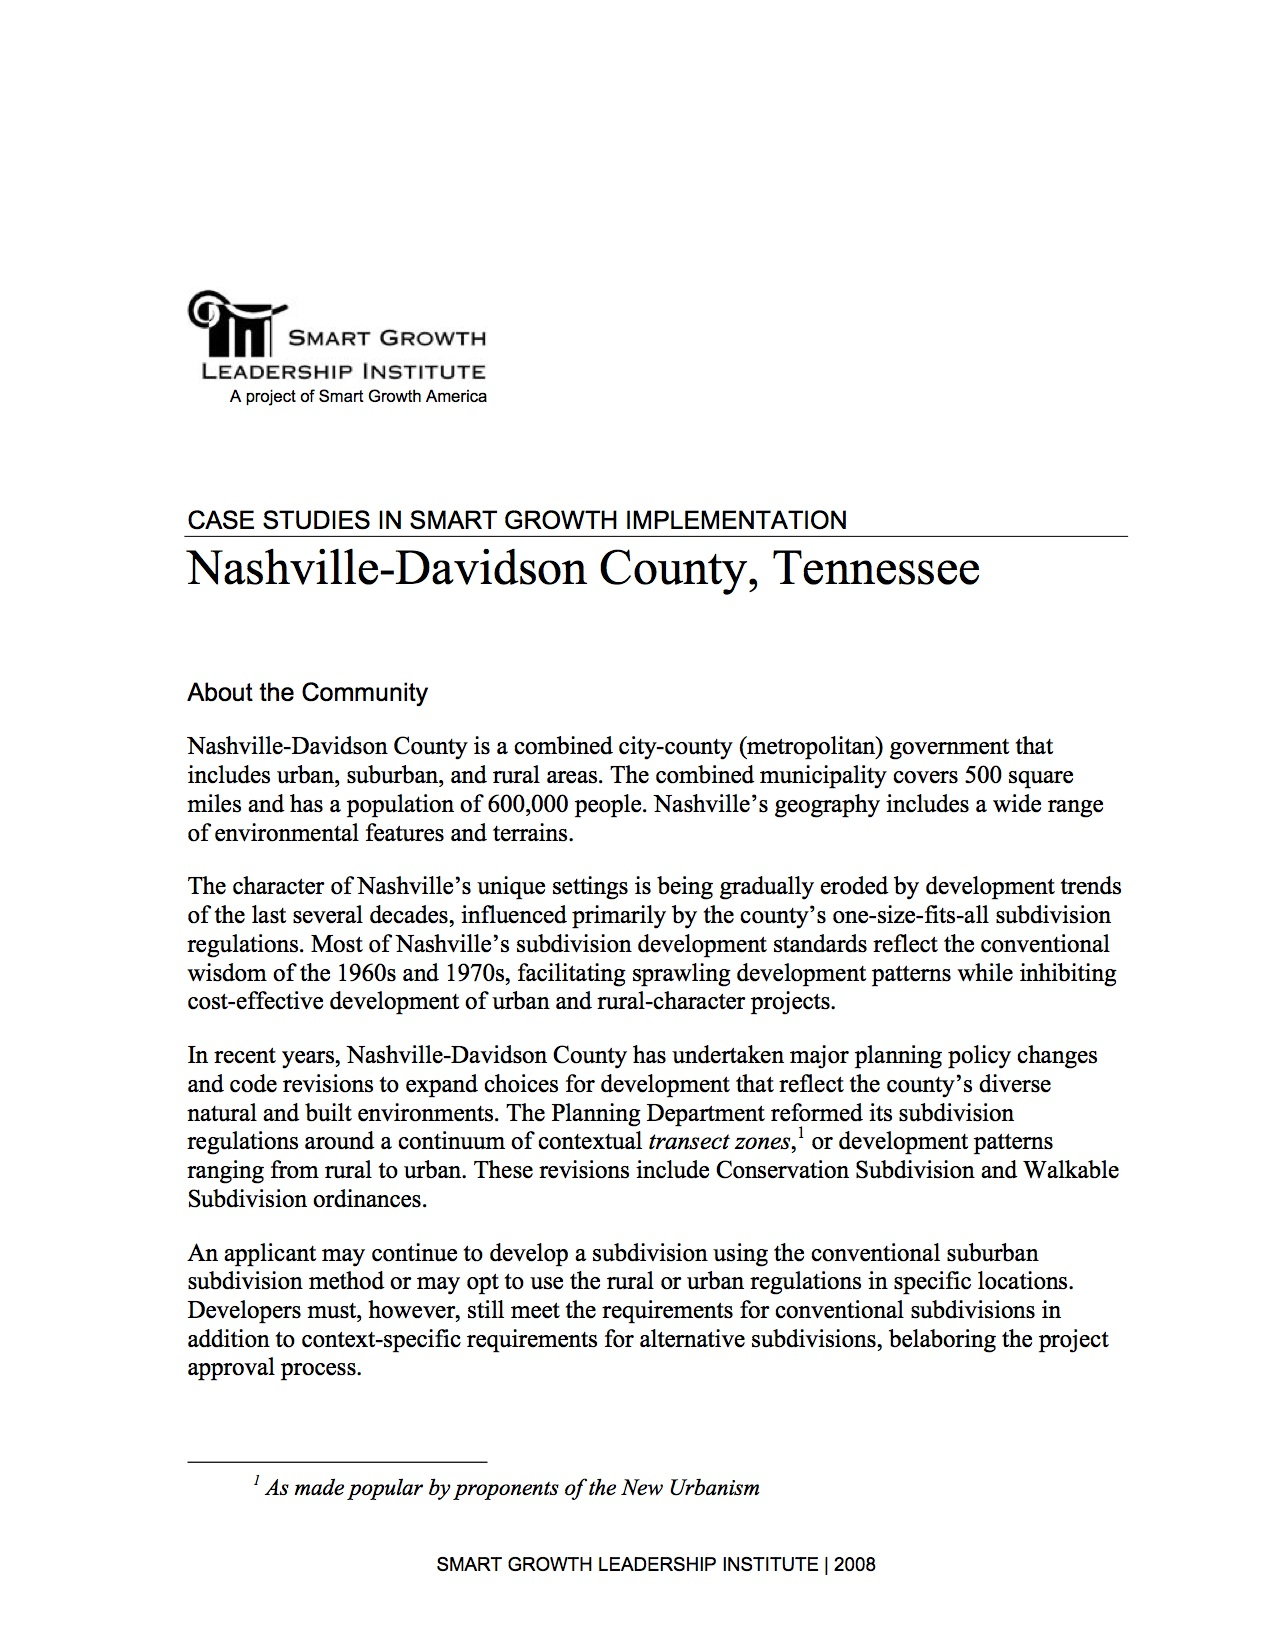 Case Studies in Smart Growth Implementation: Nashville-Davidson County, Tennessee